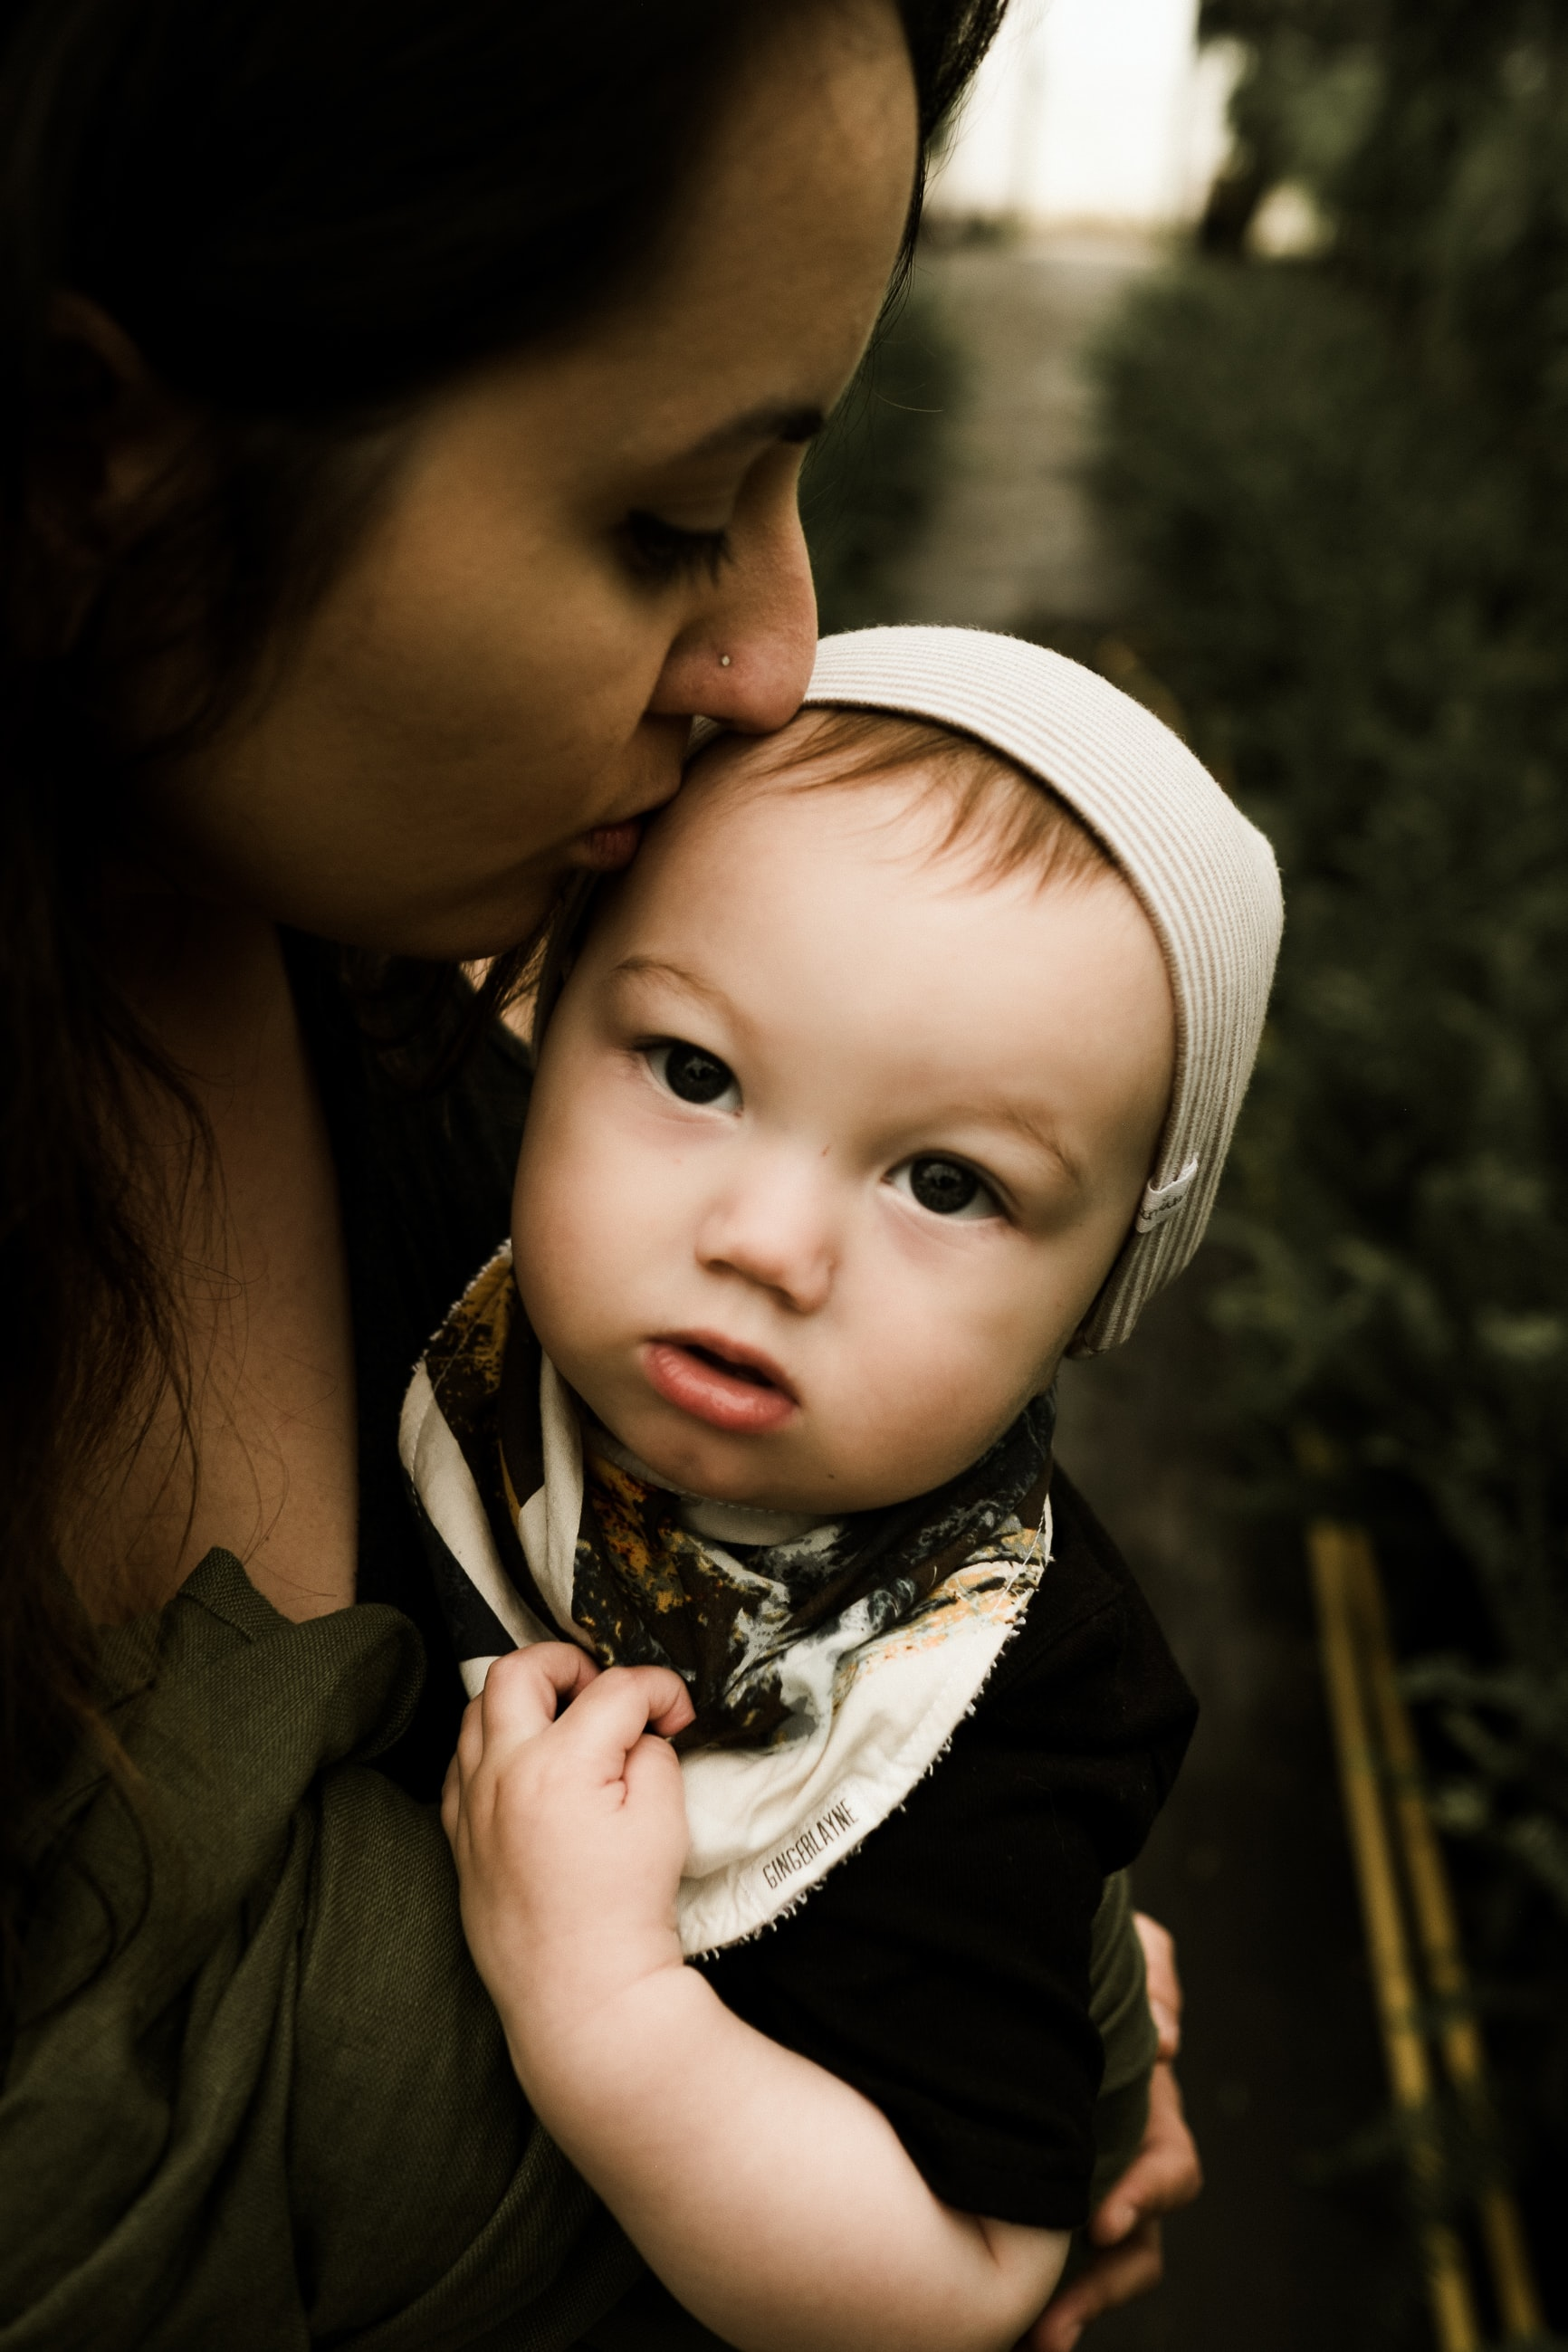 A brunette mother affectionately kissing the forehead of her young toddler, who is wearing a white hat